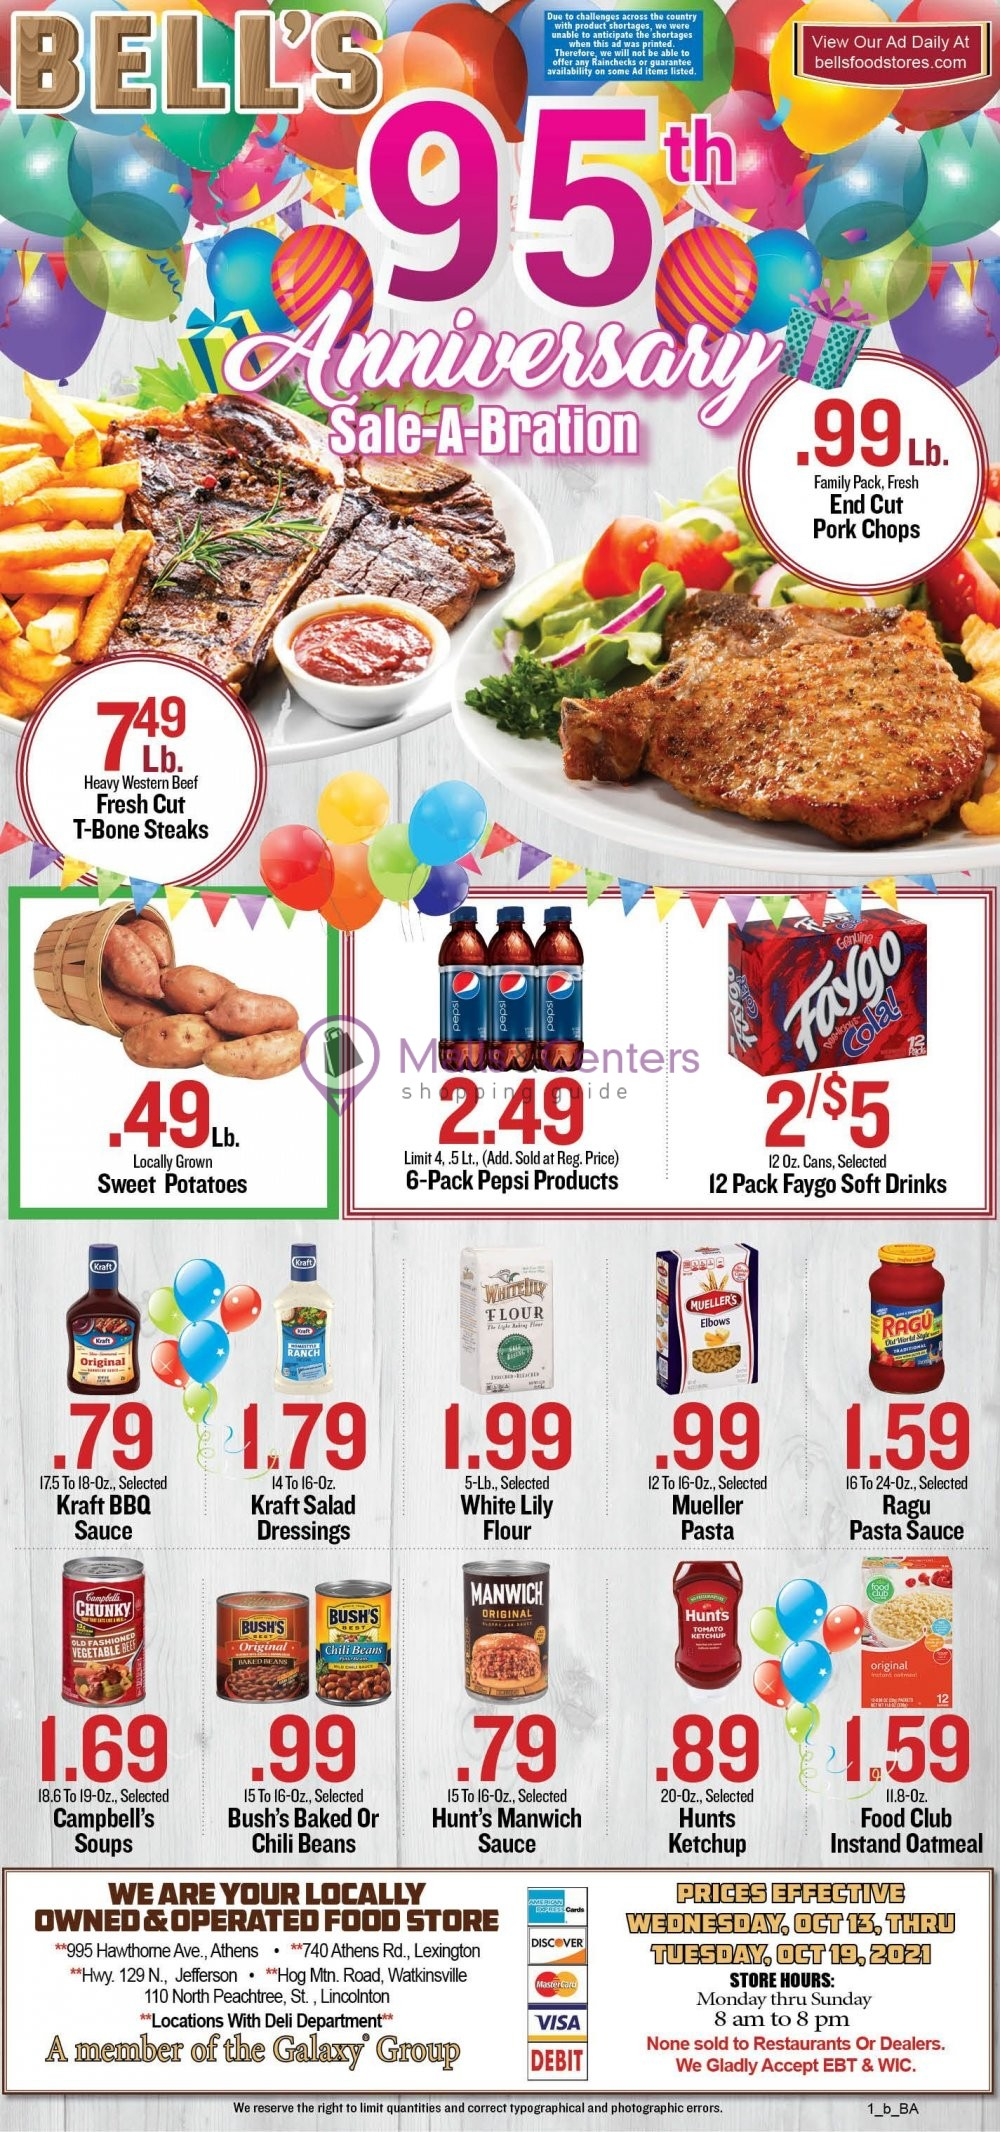 weekly ads Bell's Food Stores - page 1 - mallscenters.com